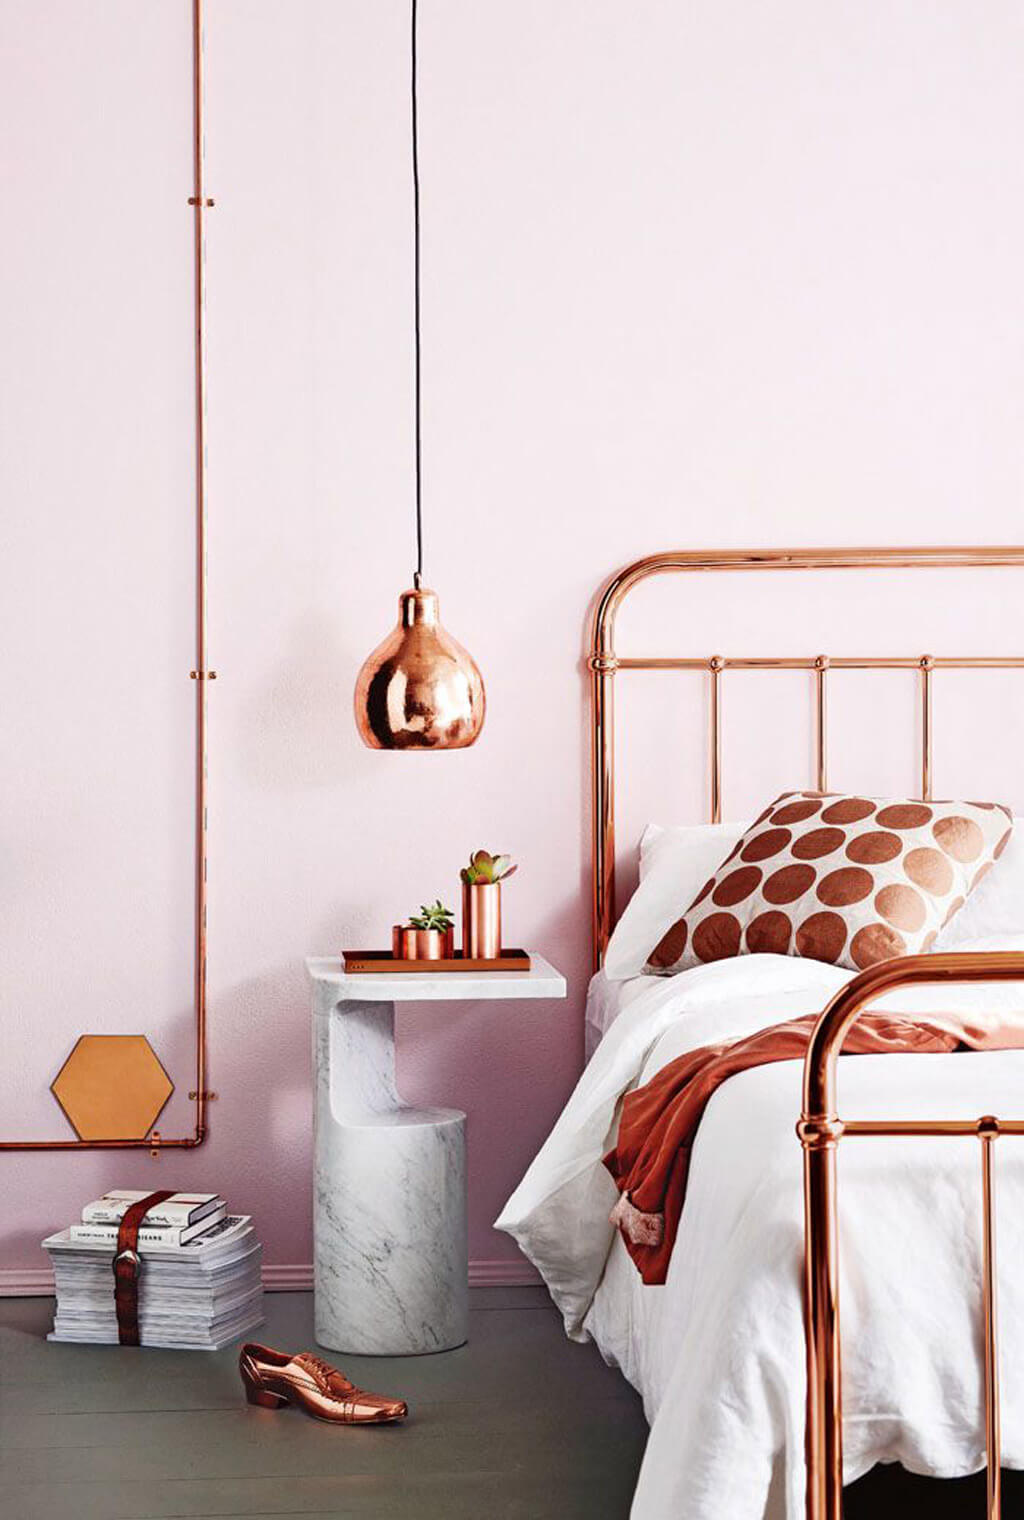 23 Best Copper and Blush Home Decor Ideas and Designs for 2020